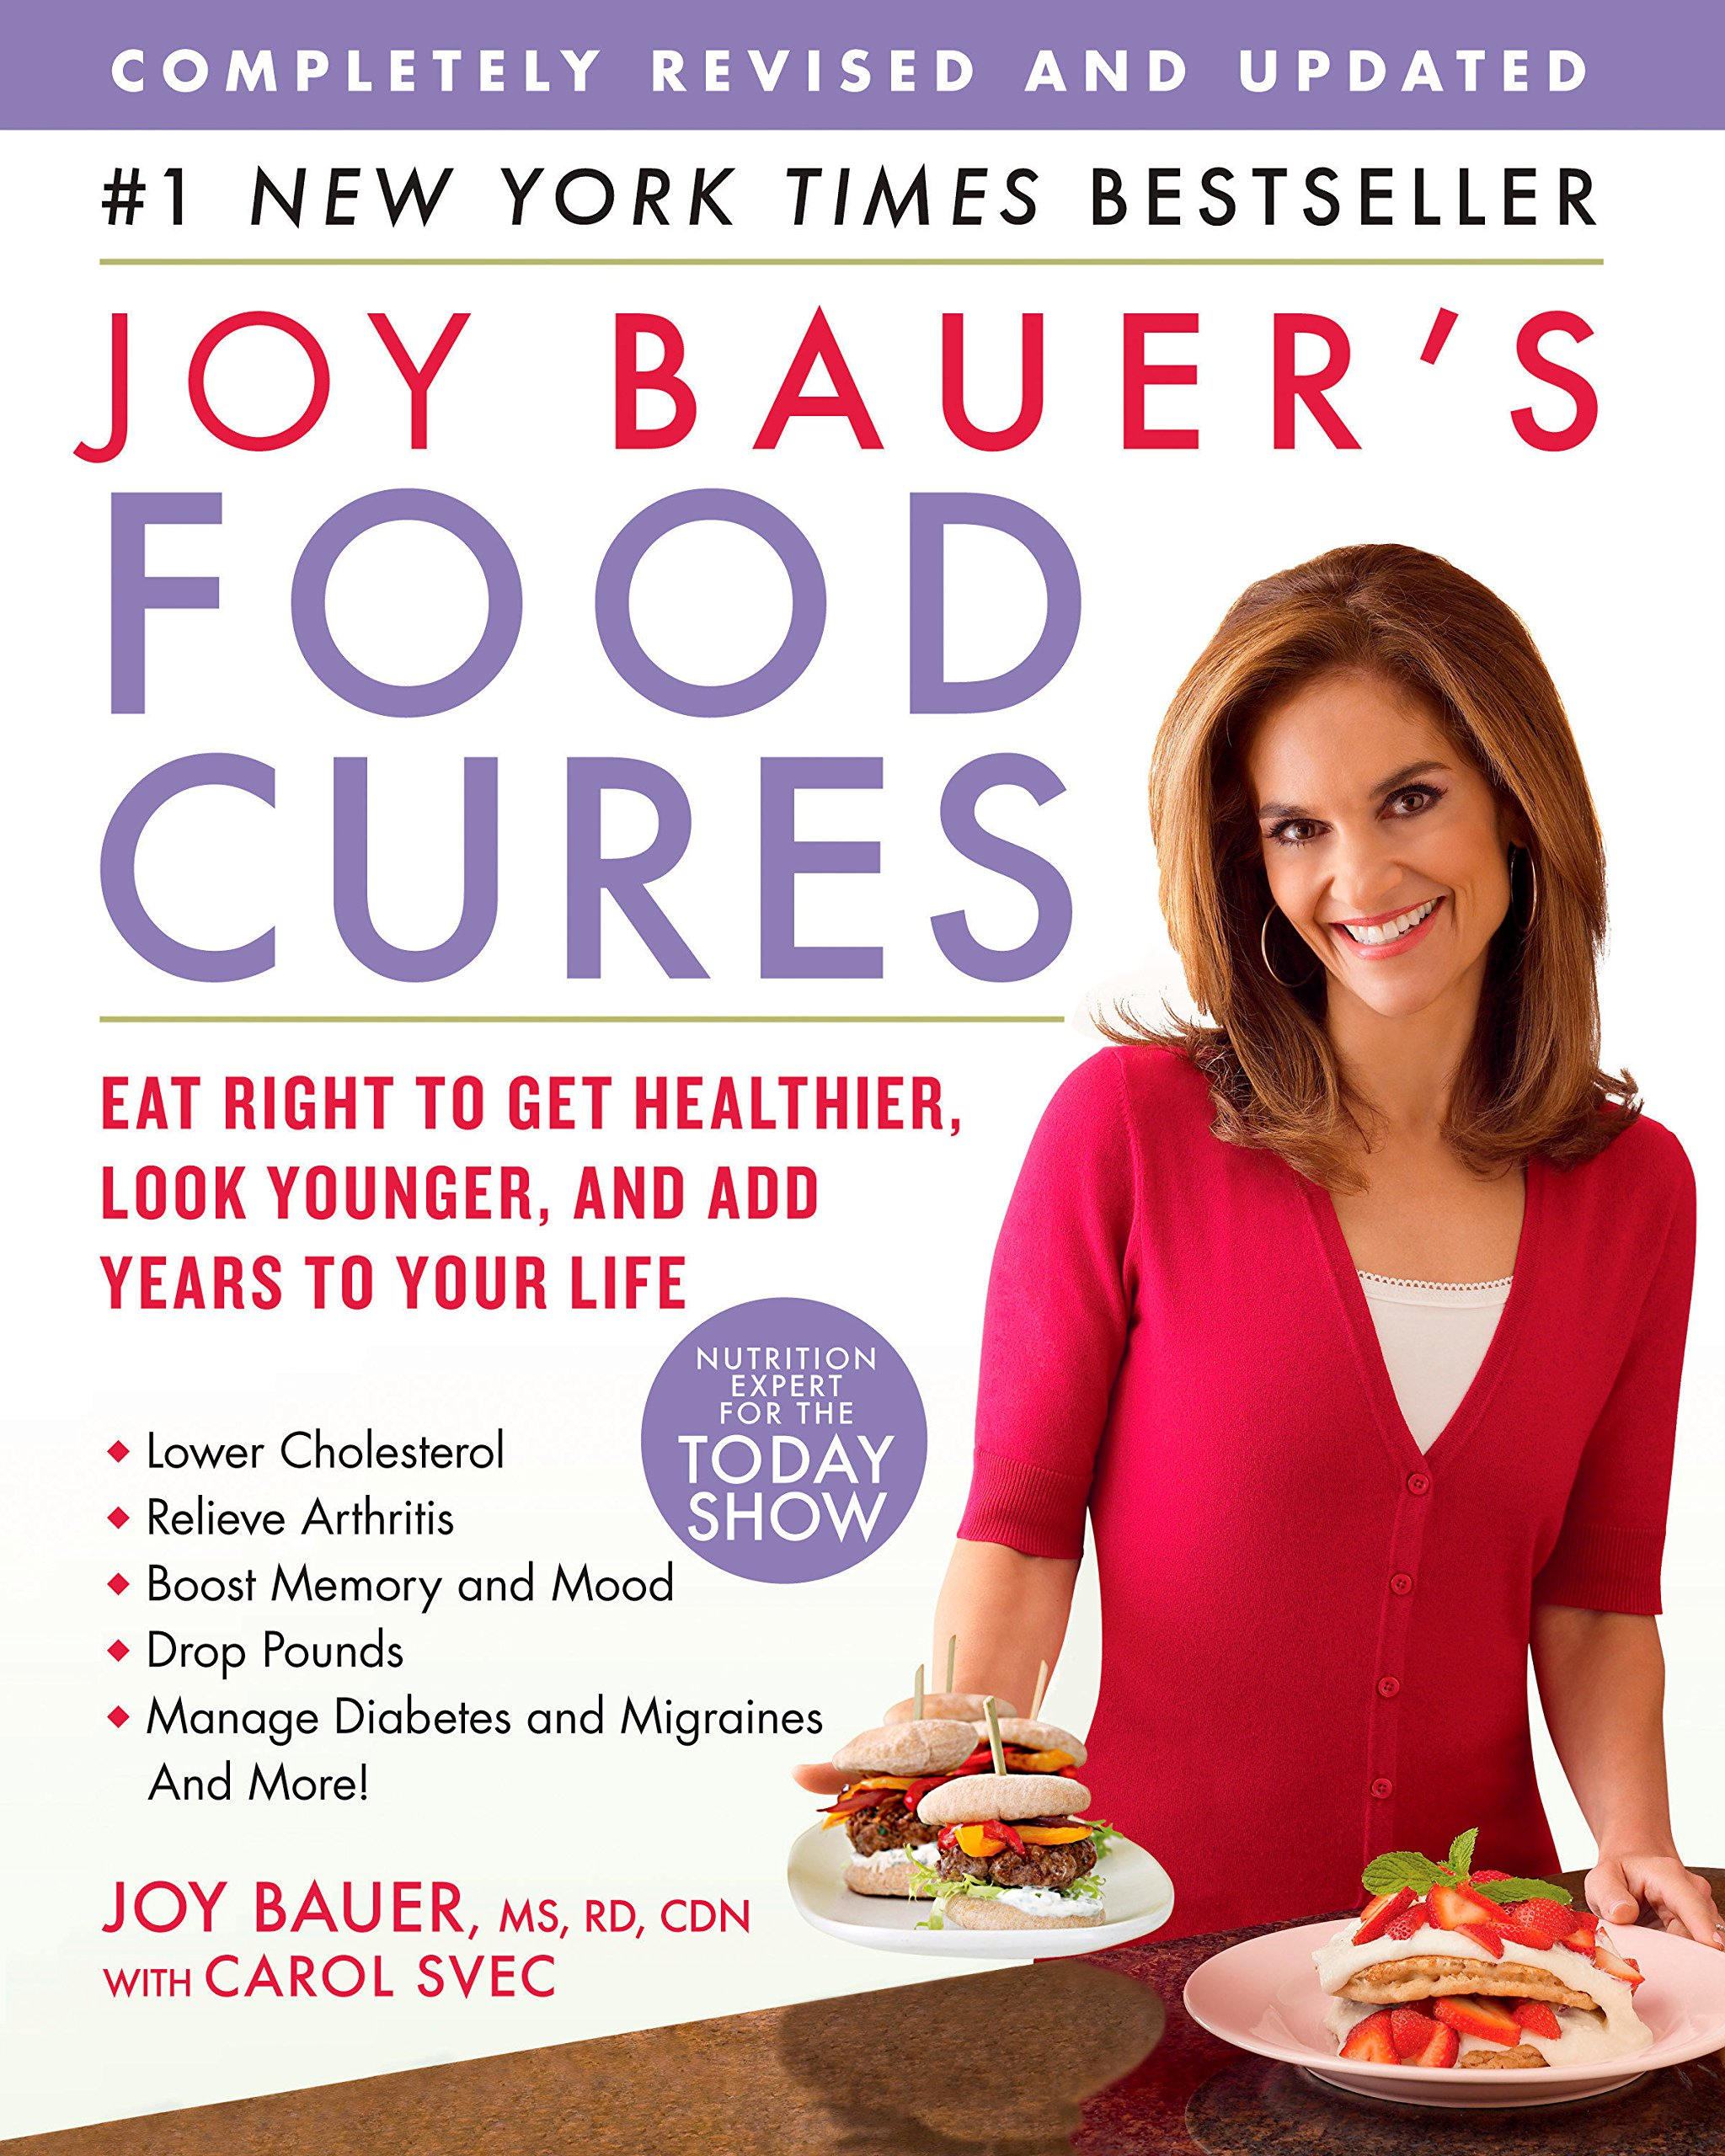 Joy Bauers Tricks to Lose Weight Quick recommendations